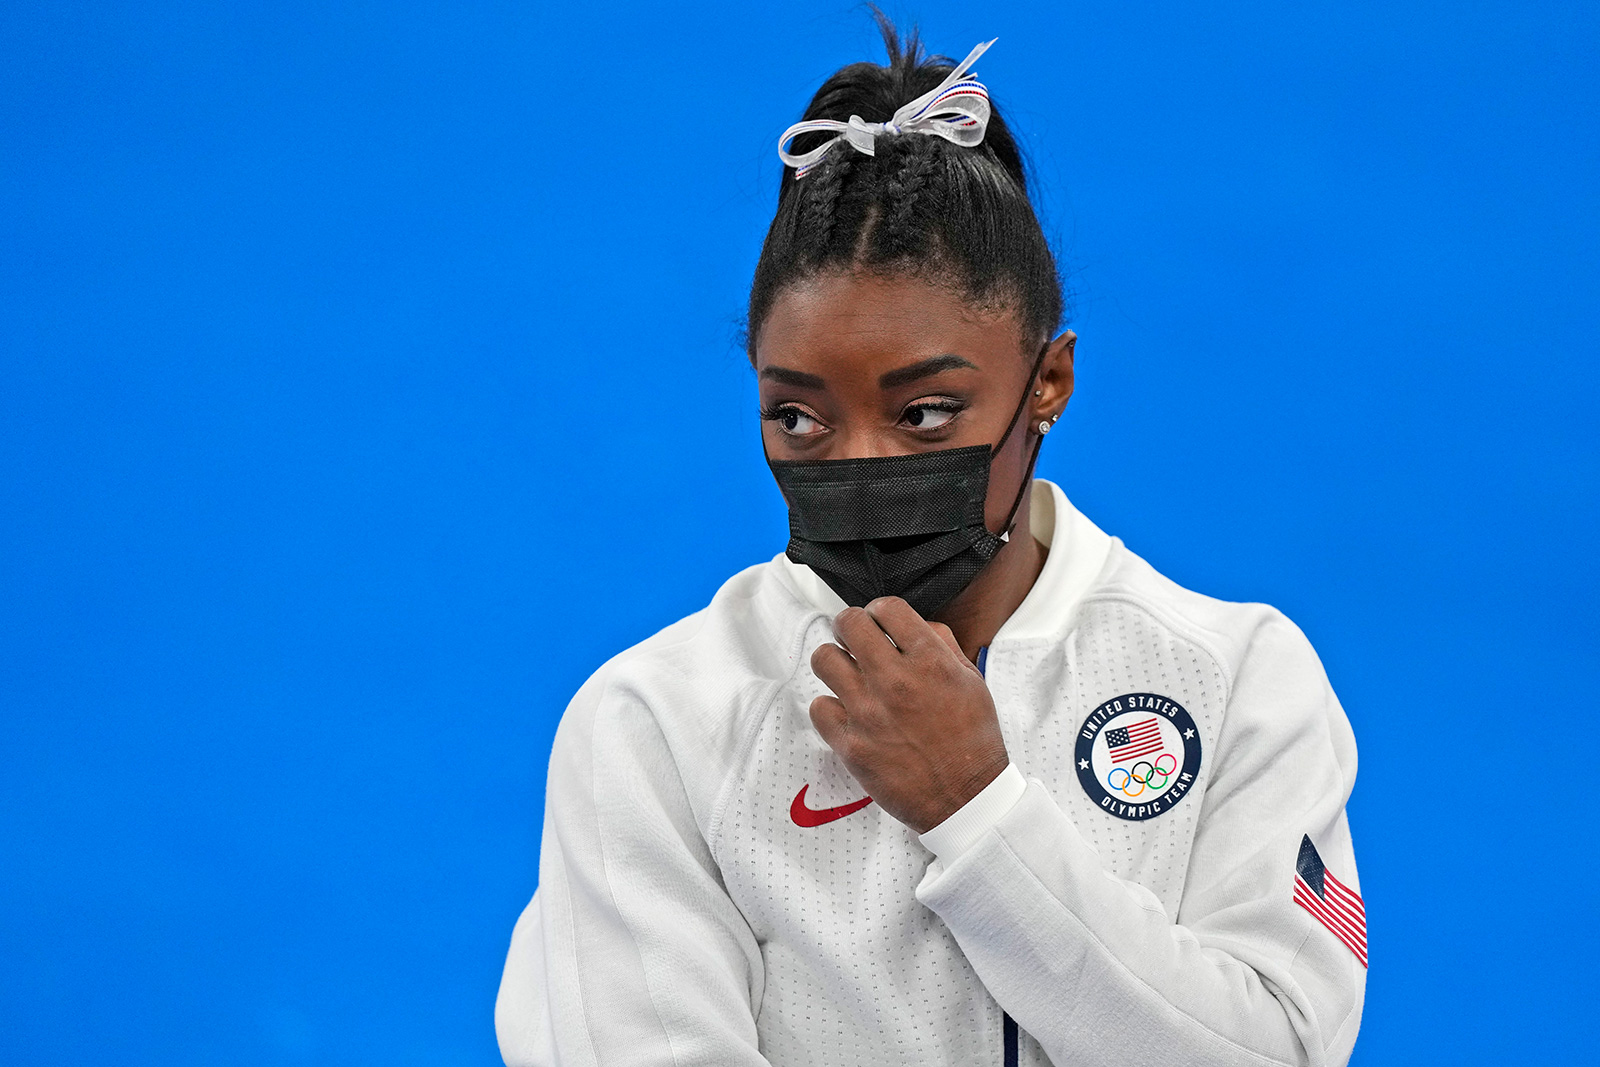 American gymnast Simone Biles stands wearing a mask after she exited the team gymnastics final on July 27.